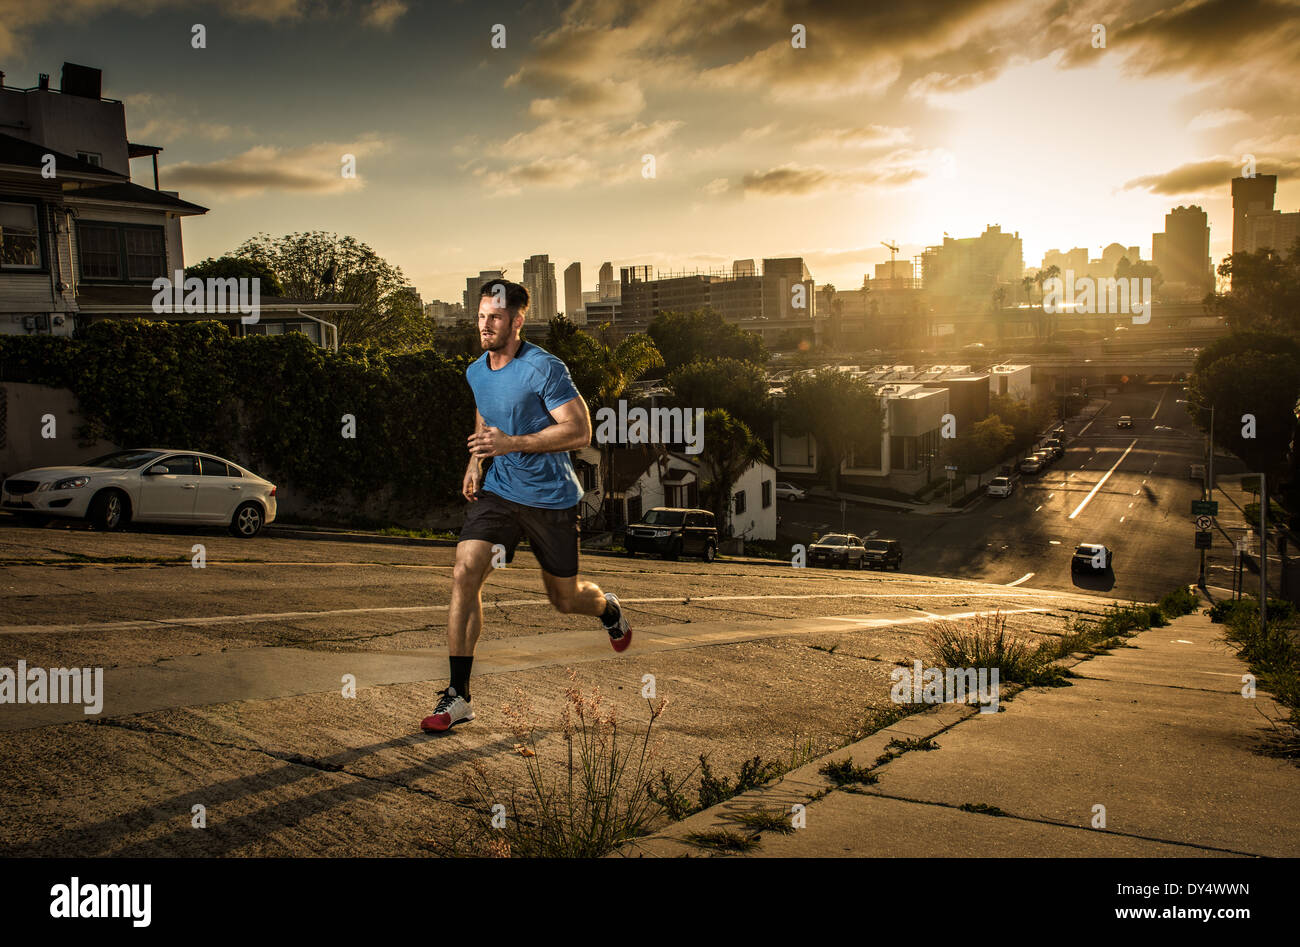 Young male runner courir vers le haut d'une colline escarpée ville Photo Stock